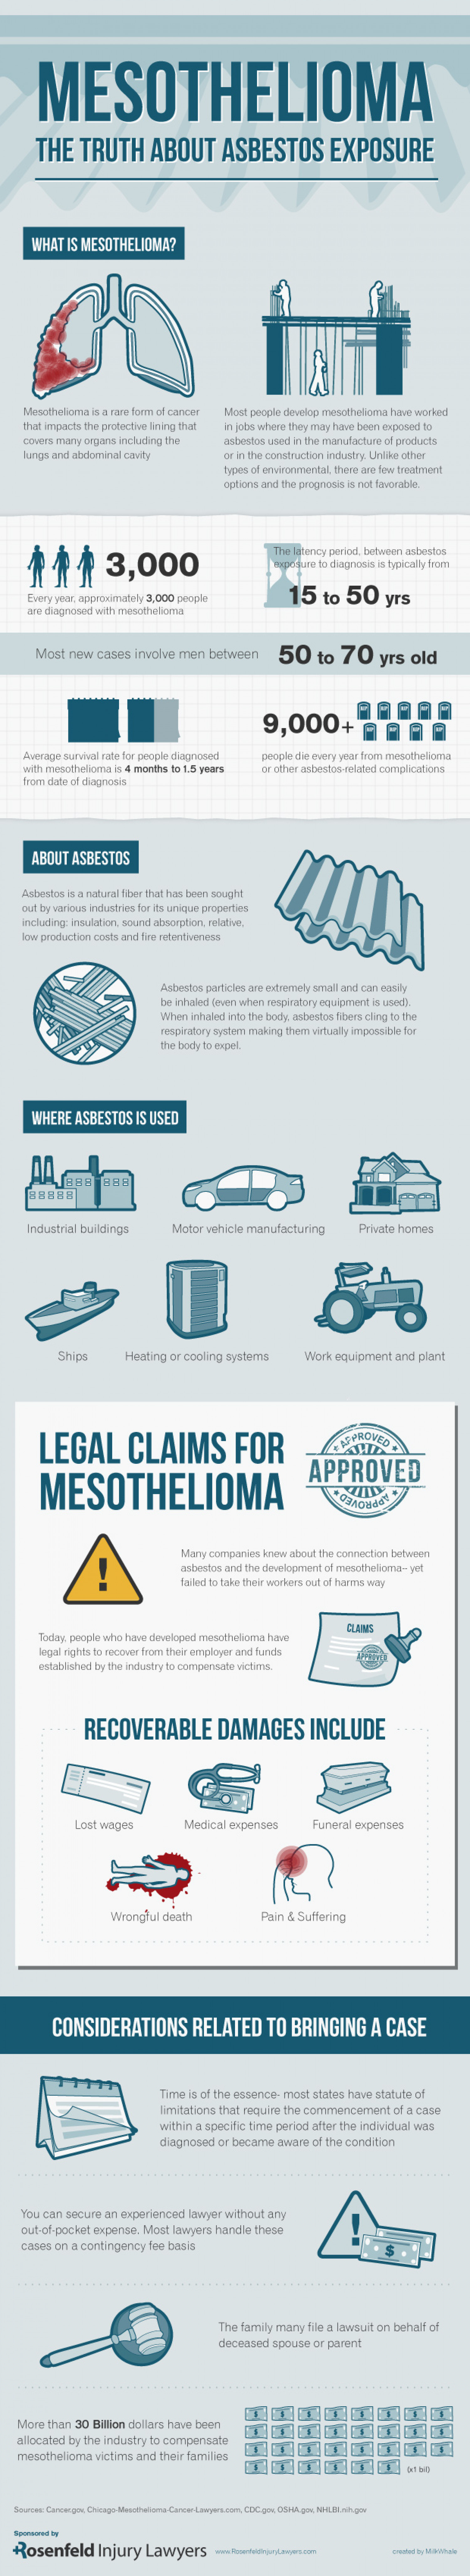 Mesothelioma: The Truth About Asbestos Exposure Infographic